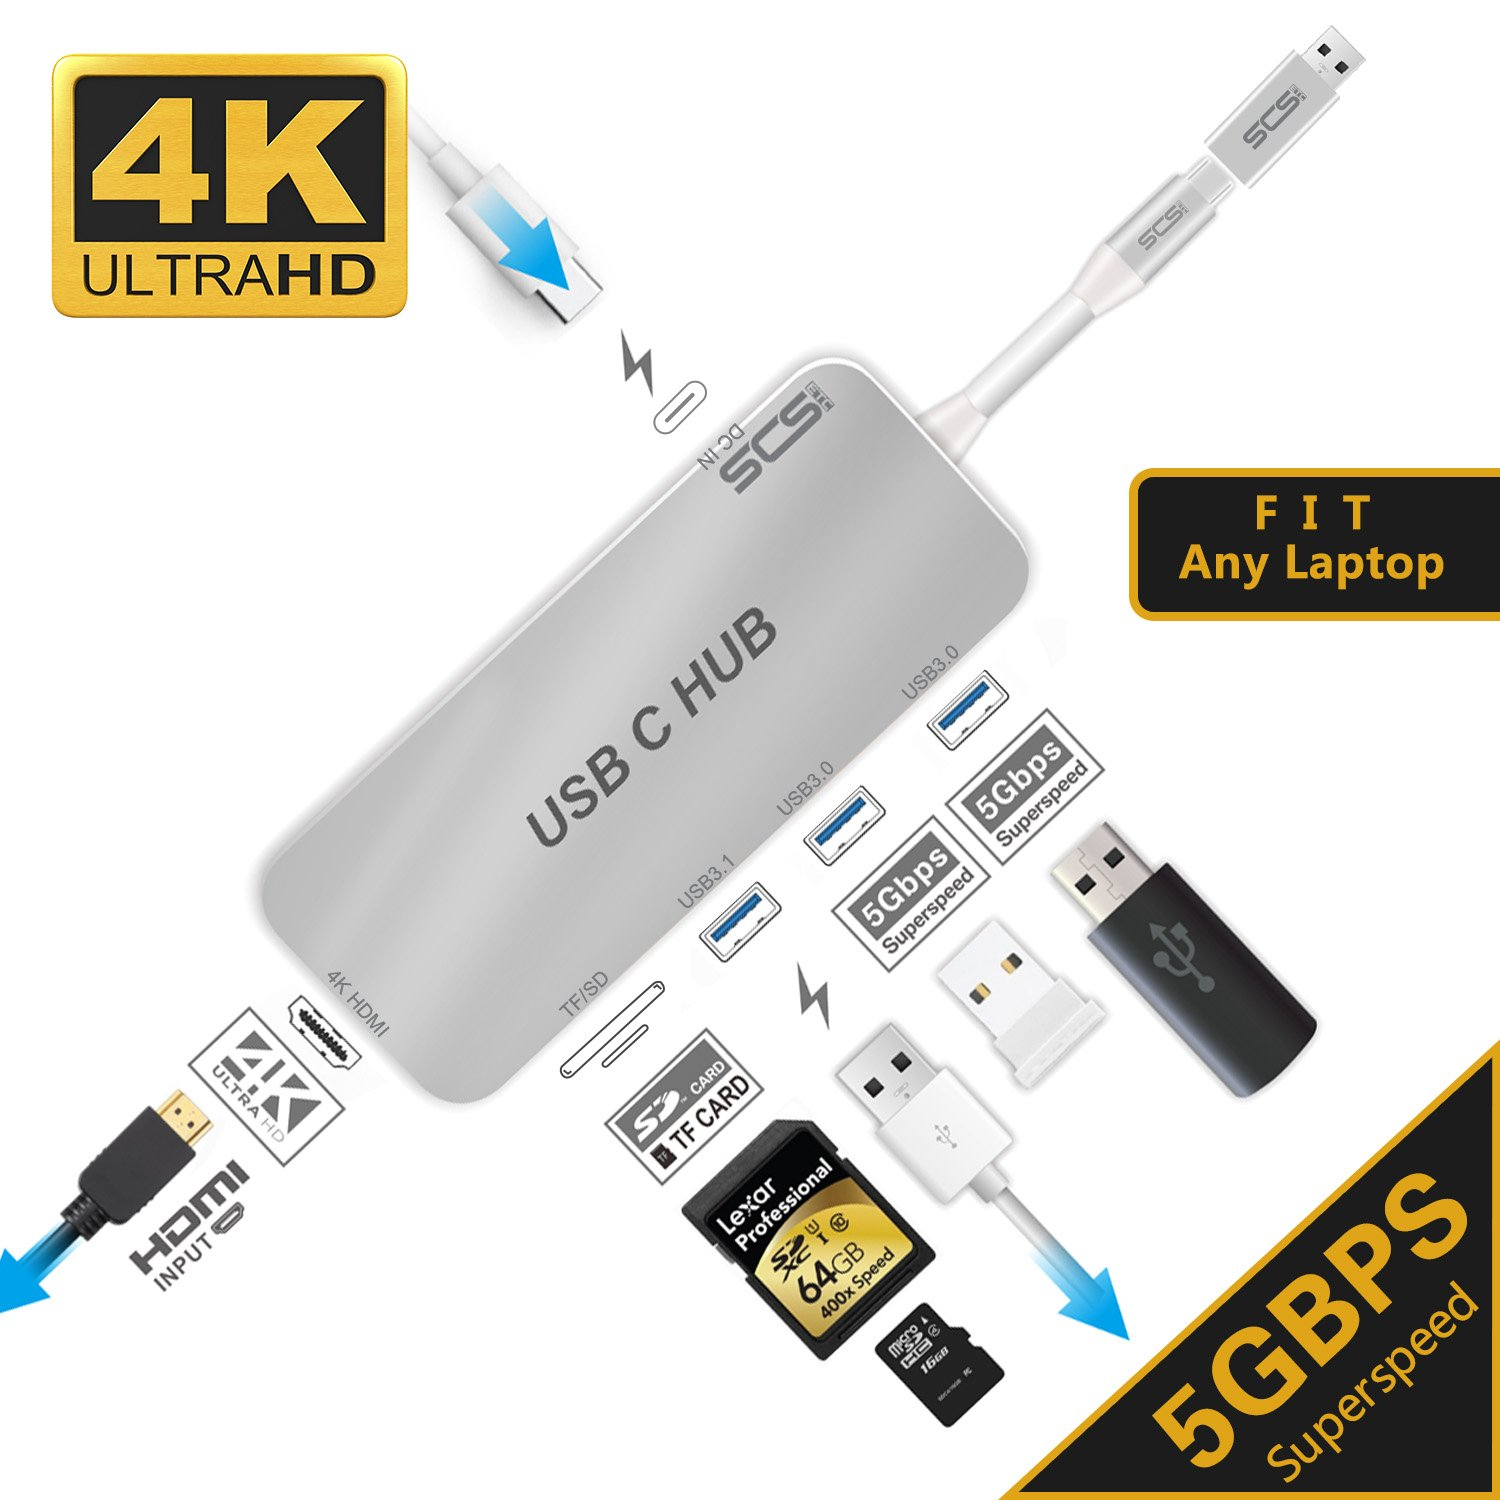 USB C Hub,SCS ETC USB C Adapter 3.1 with Type C Power Charging Port, HDMI 4K Port,3USB 3.0 Port,SD&TF Card of USB C Laptop, Equipped with a Separate USB Suitable for any Computer Device (Silver) by SCS ETC